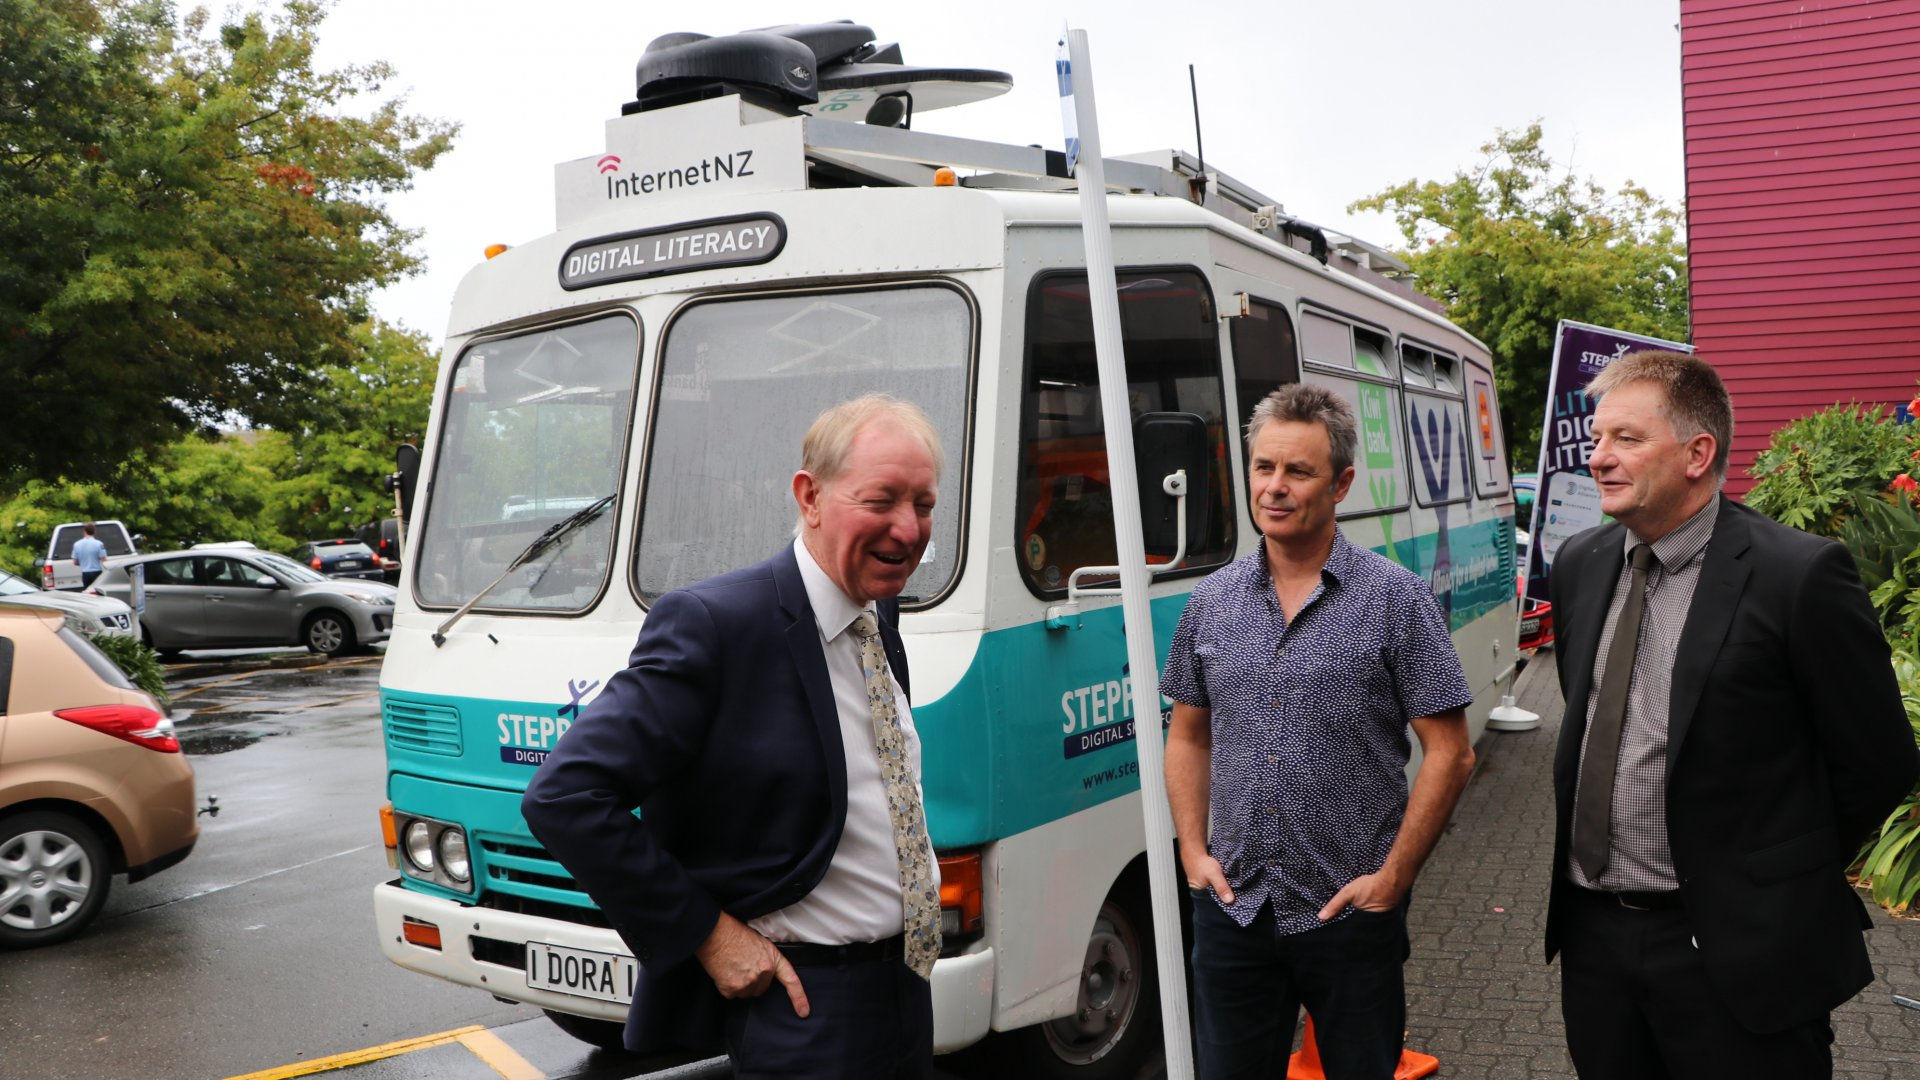 Nelson's MP Nick Smith and Councillor Matt Lawrey visited the bus on its final day.